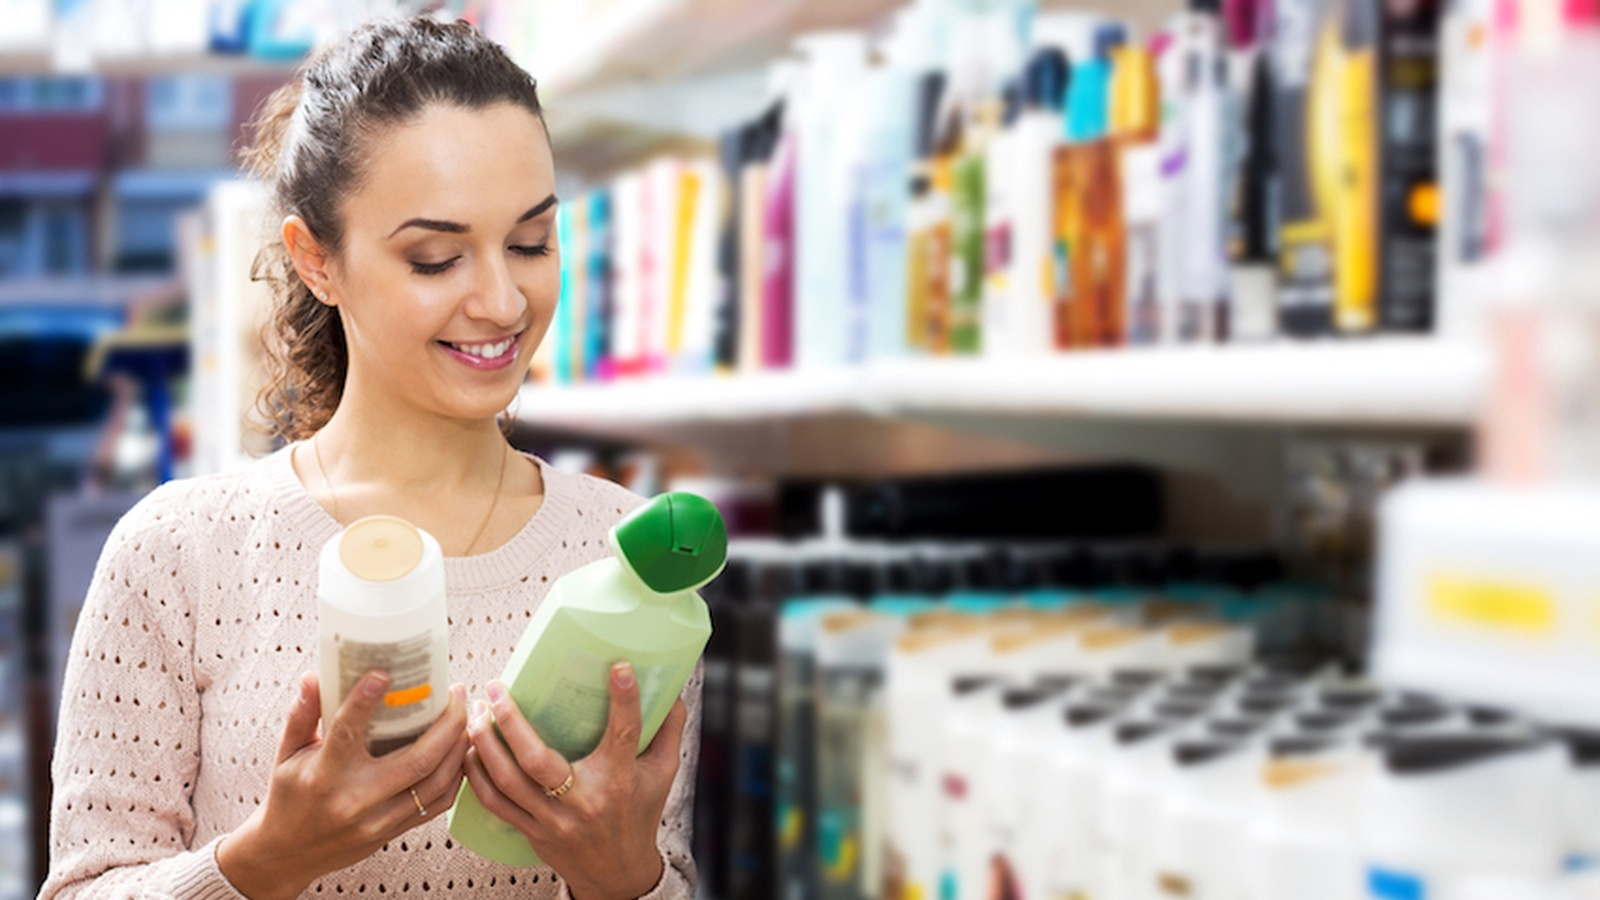 Warning: Is Your Shampoo Harming Your Health?